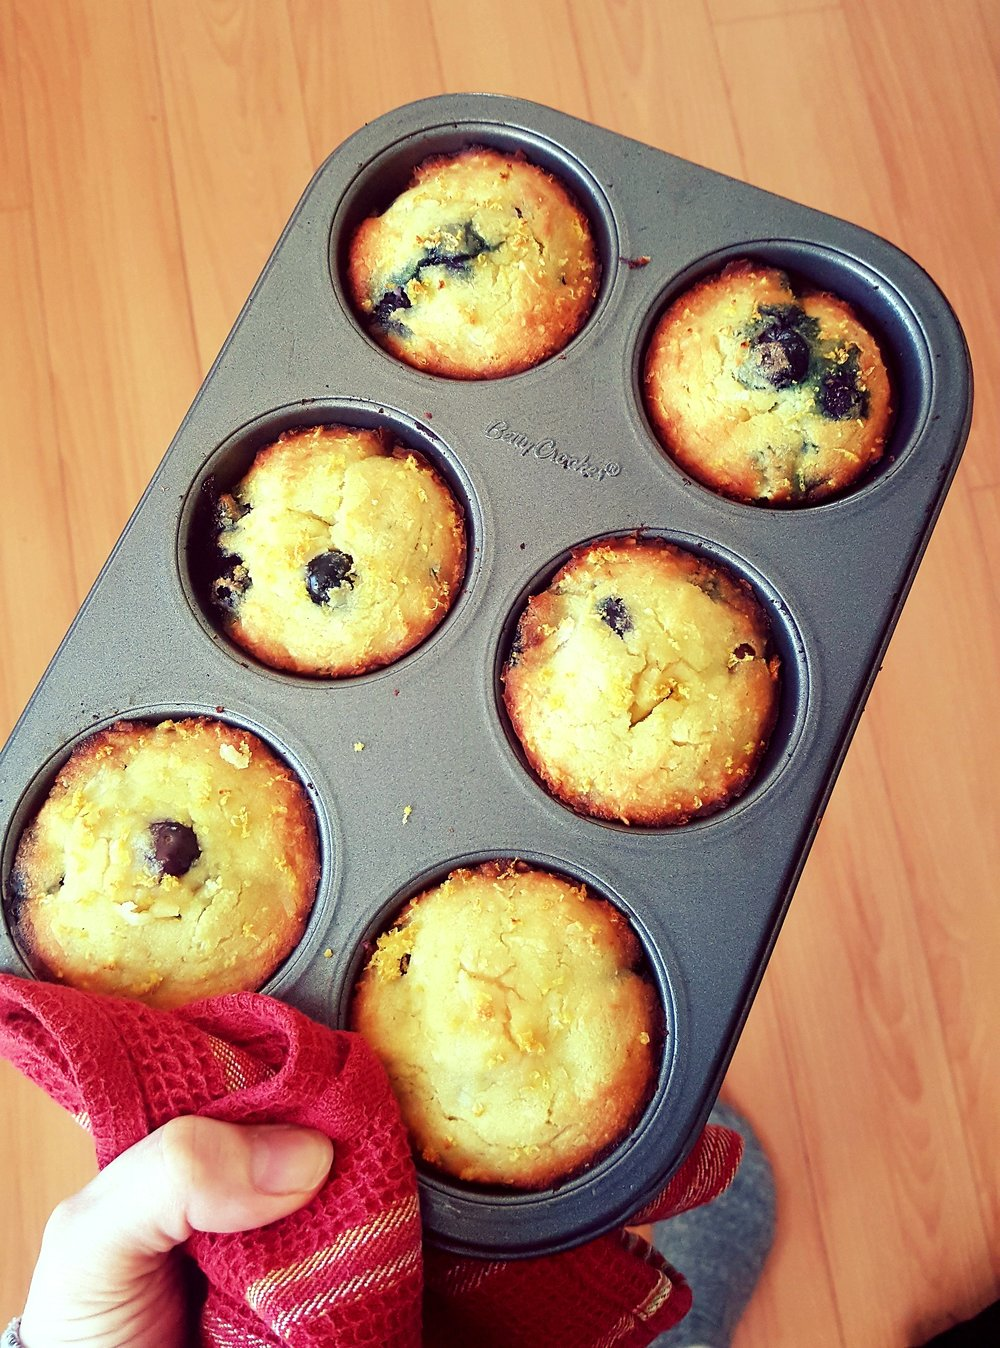 Blueberry & Lemon Muffins  - Add local blueberries & organic lemon zest!